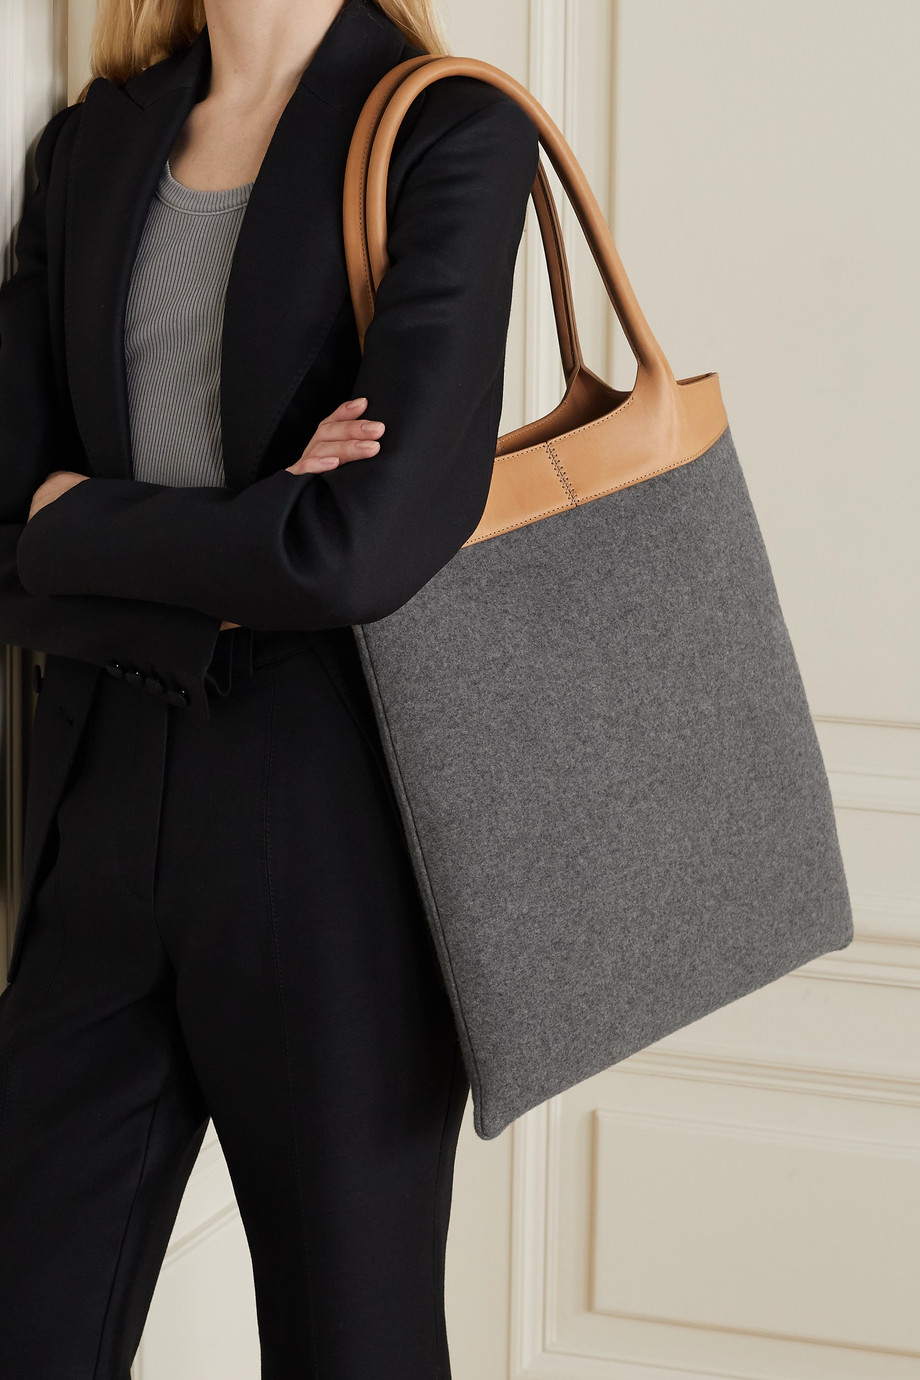 Gabriela Hearst Leather-trimmed cashmere tote